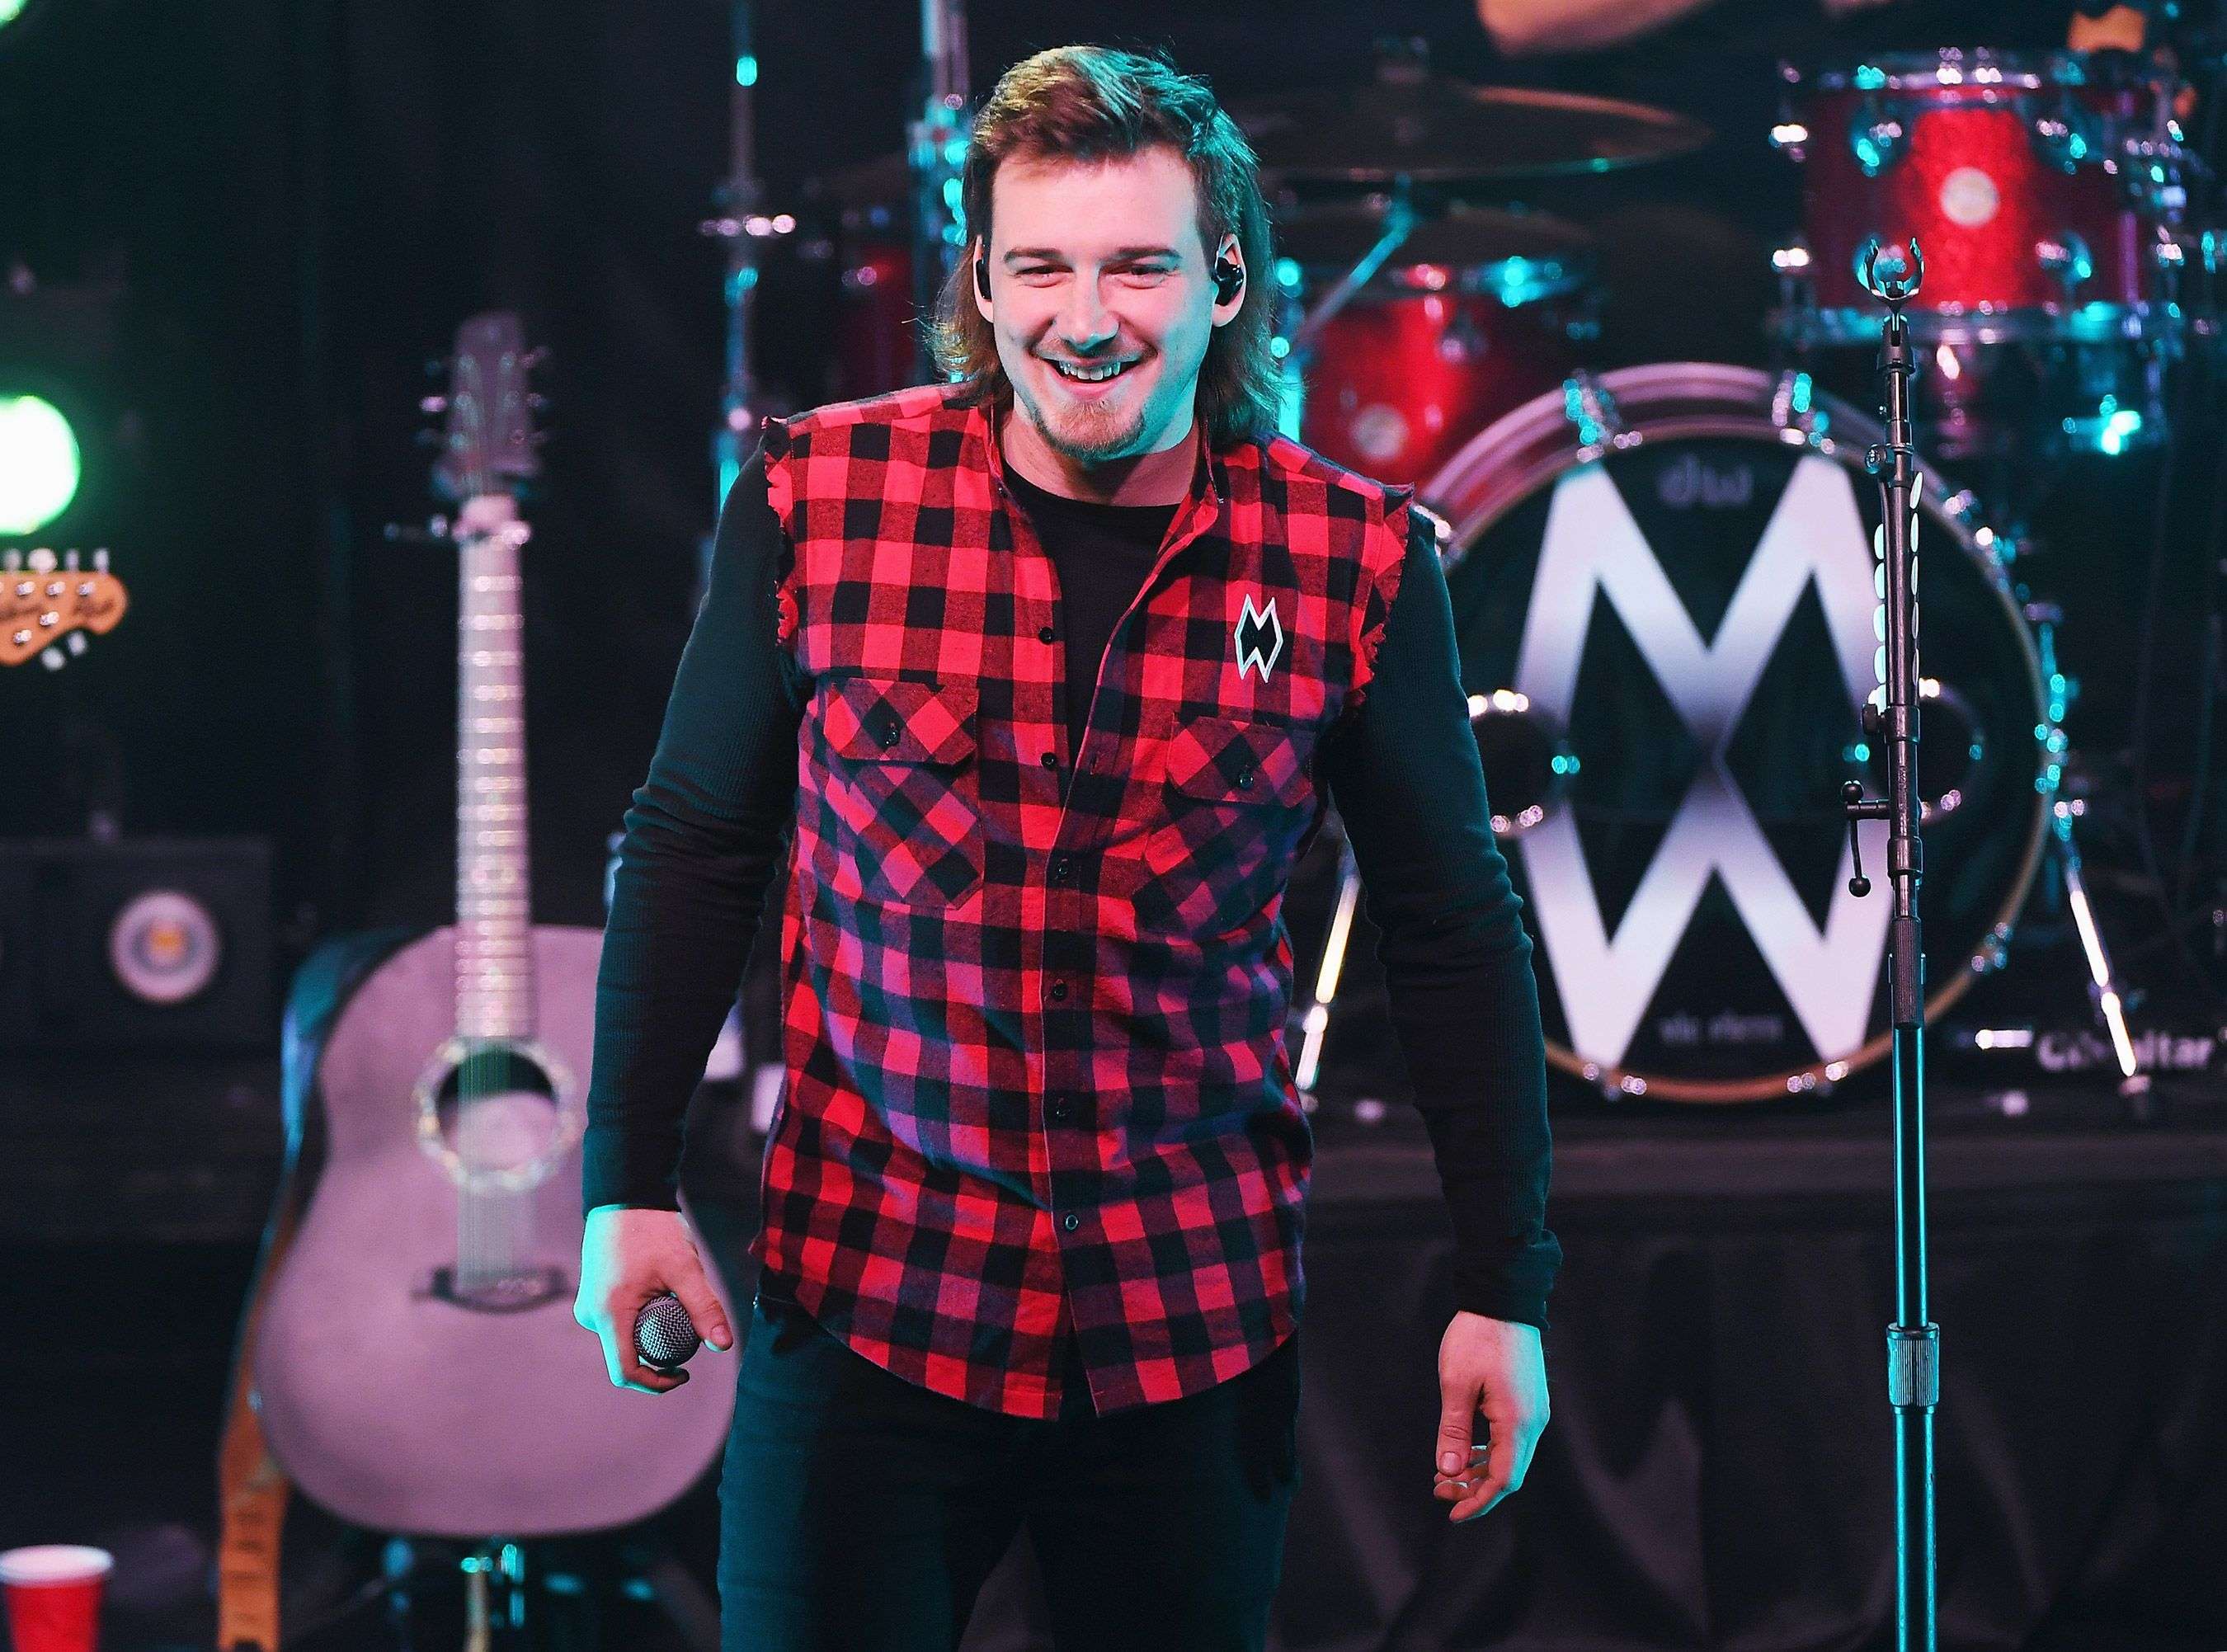 Morgan Wallen Knocks Em Out Not Back With Whiskey Glasses On His Just Completed Tour Concert Crowd Country Music Florida Georgia Line